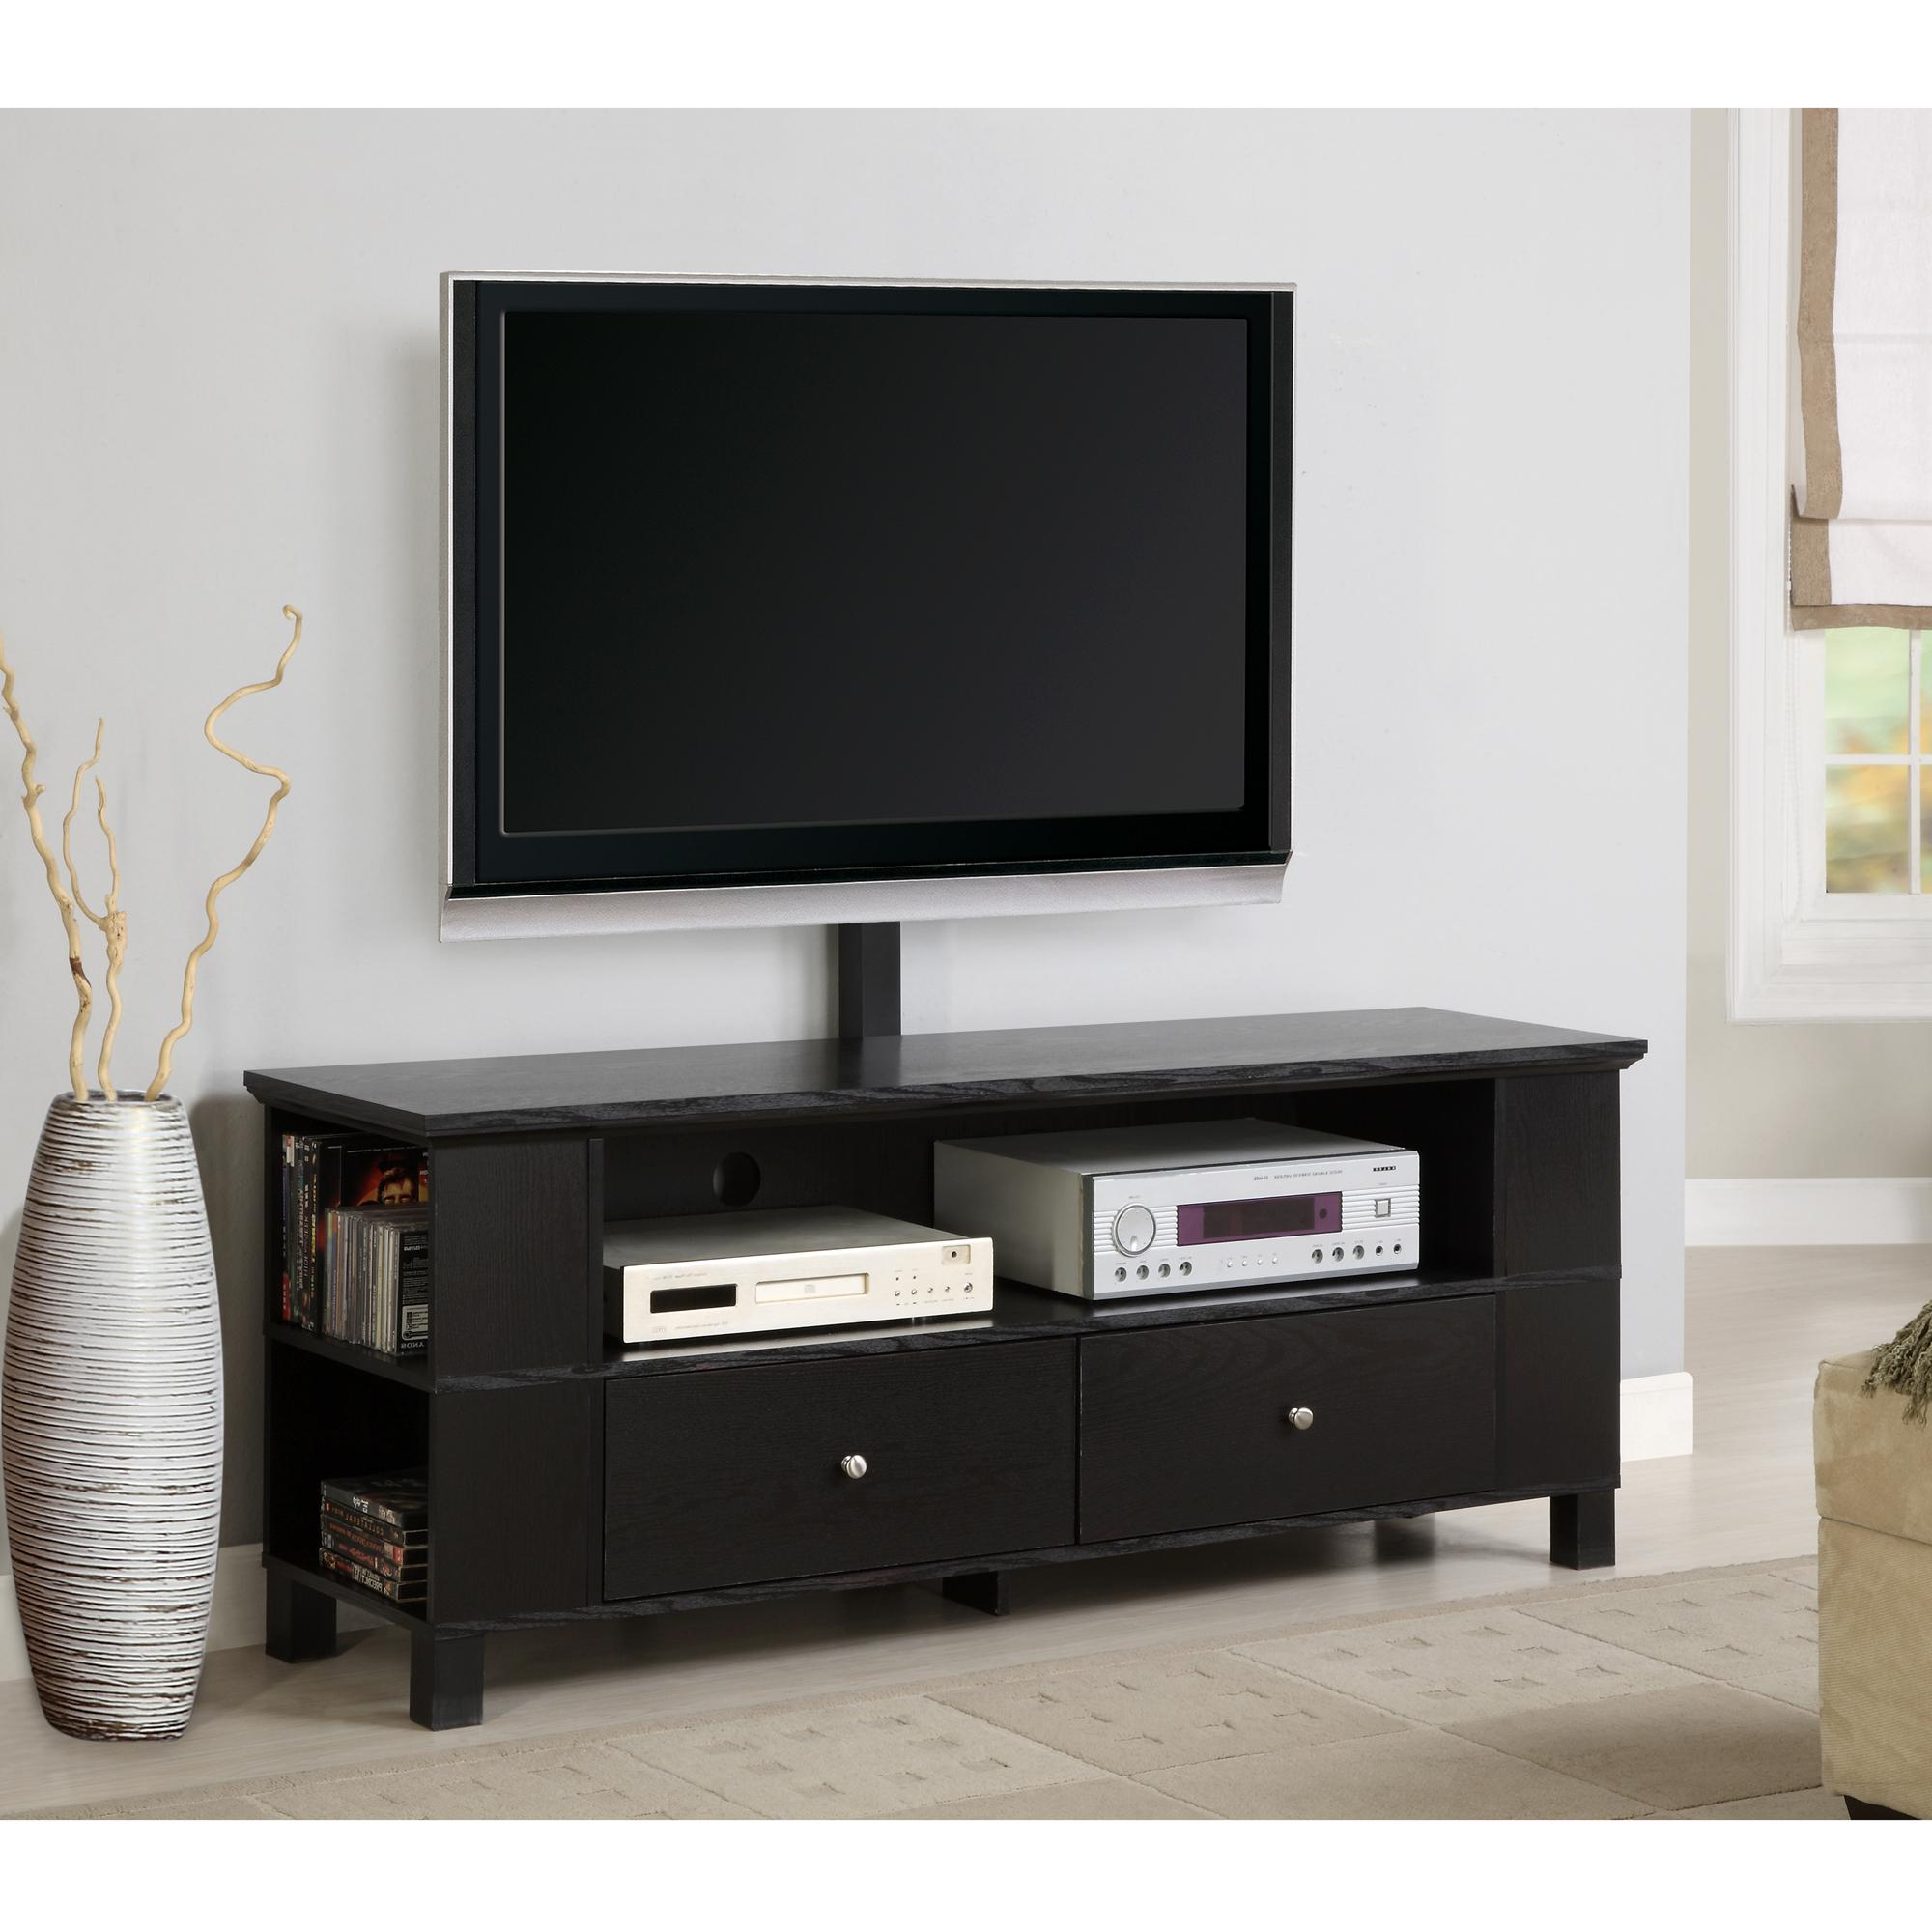 """Lorraine Tv Stands For Tvs Up To 60"""" Pertaining To Most Recently Released Amazon – Walker Edison 60"""" Class Black Wood Tv Stand (View 2 of 25)"""